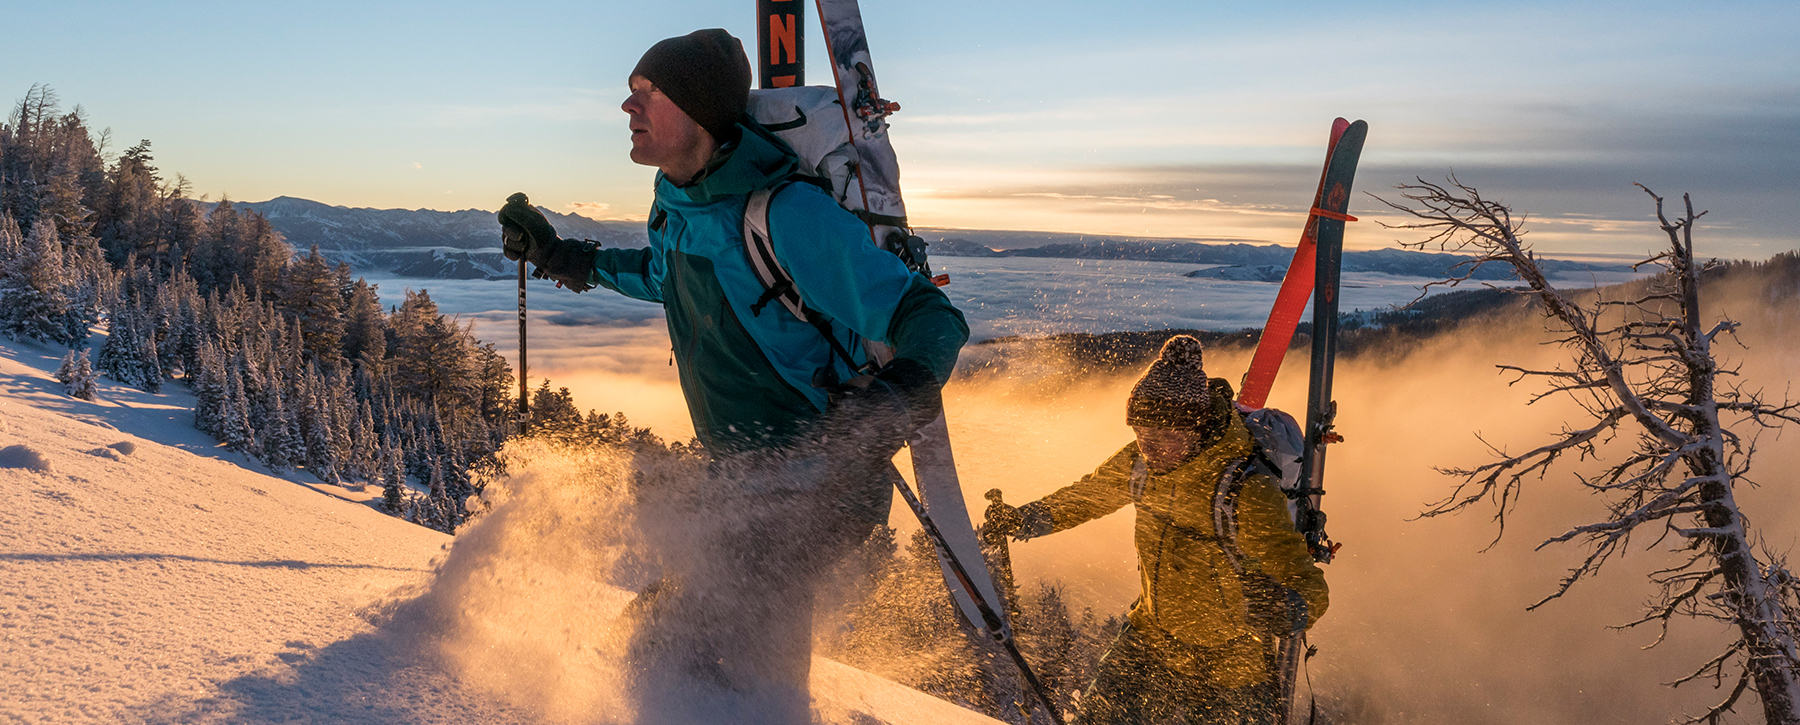 Two skiers hiking their way up in the backcountry at sunrise.